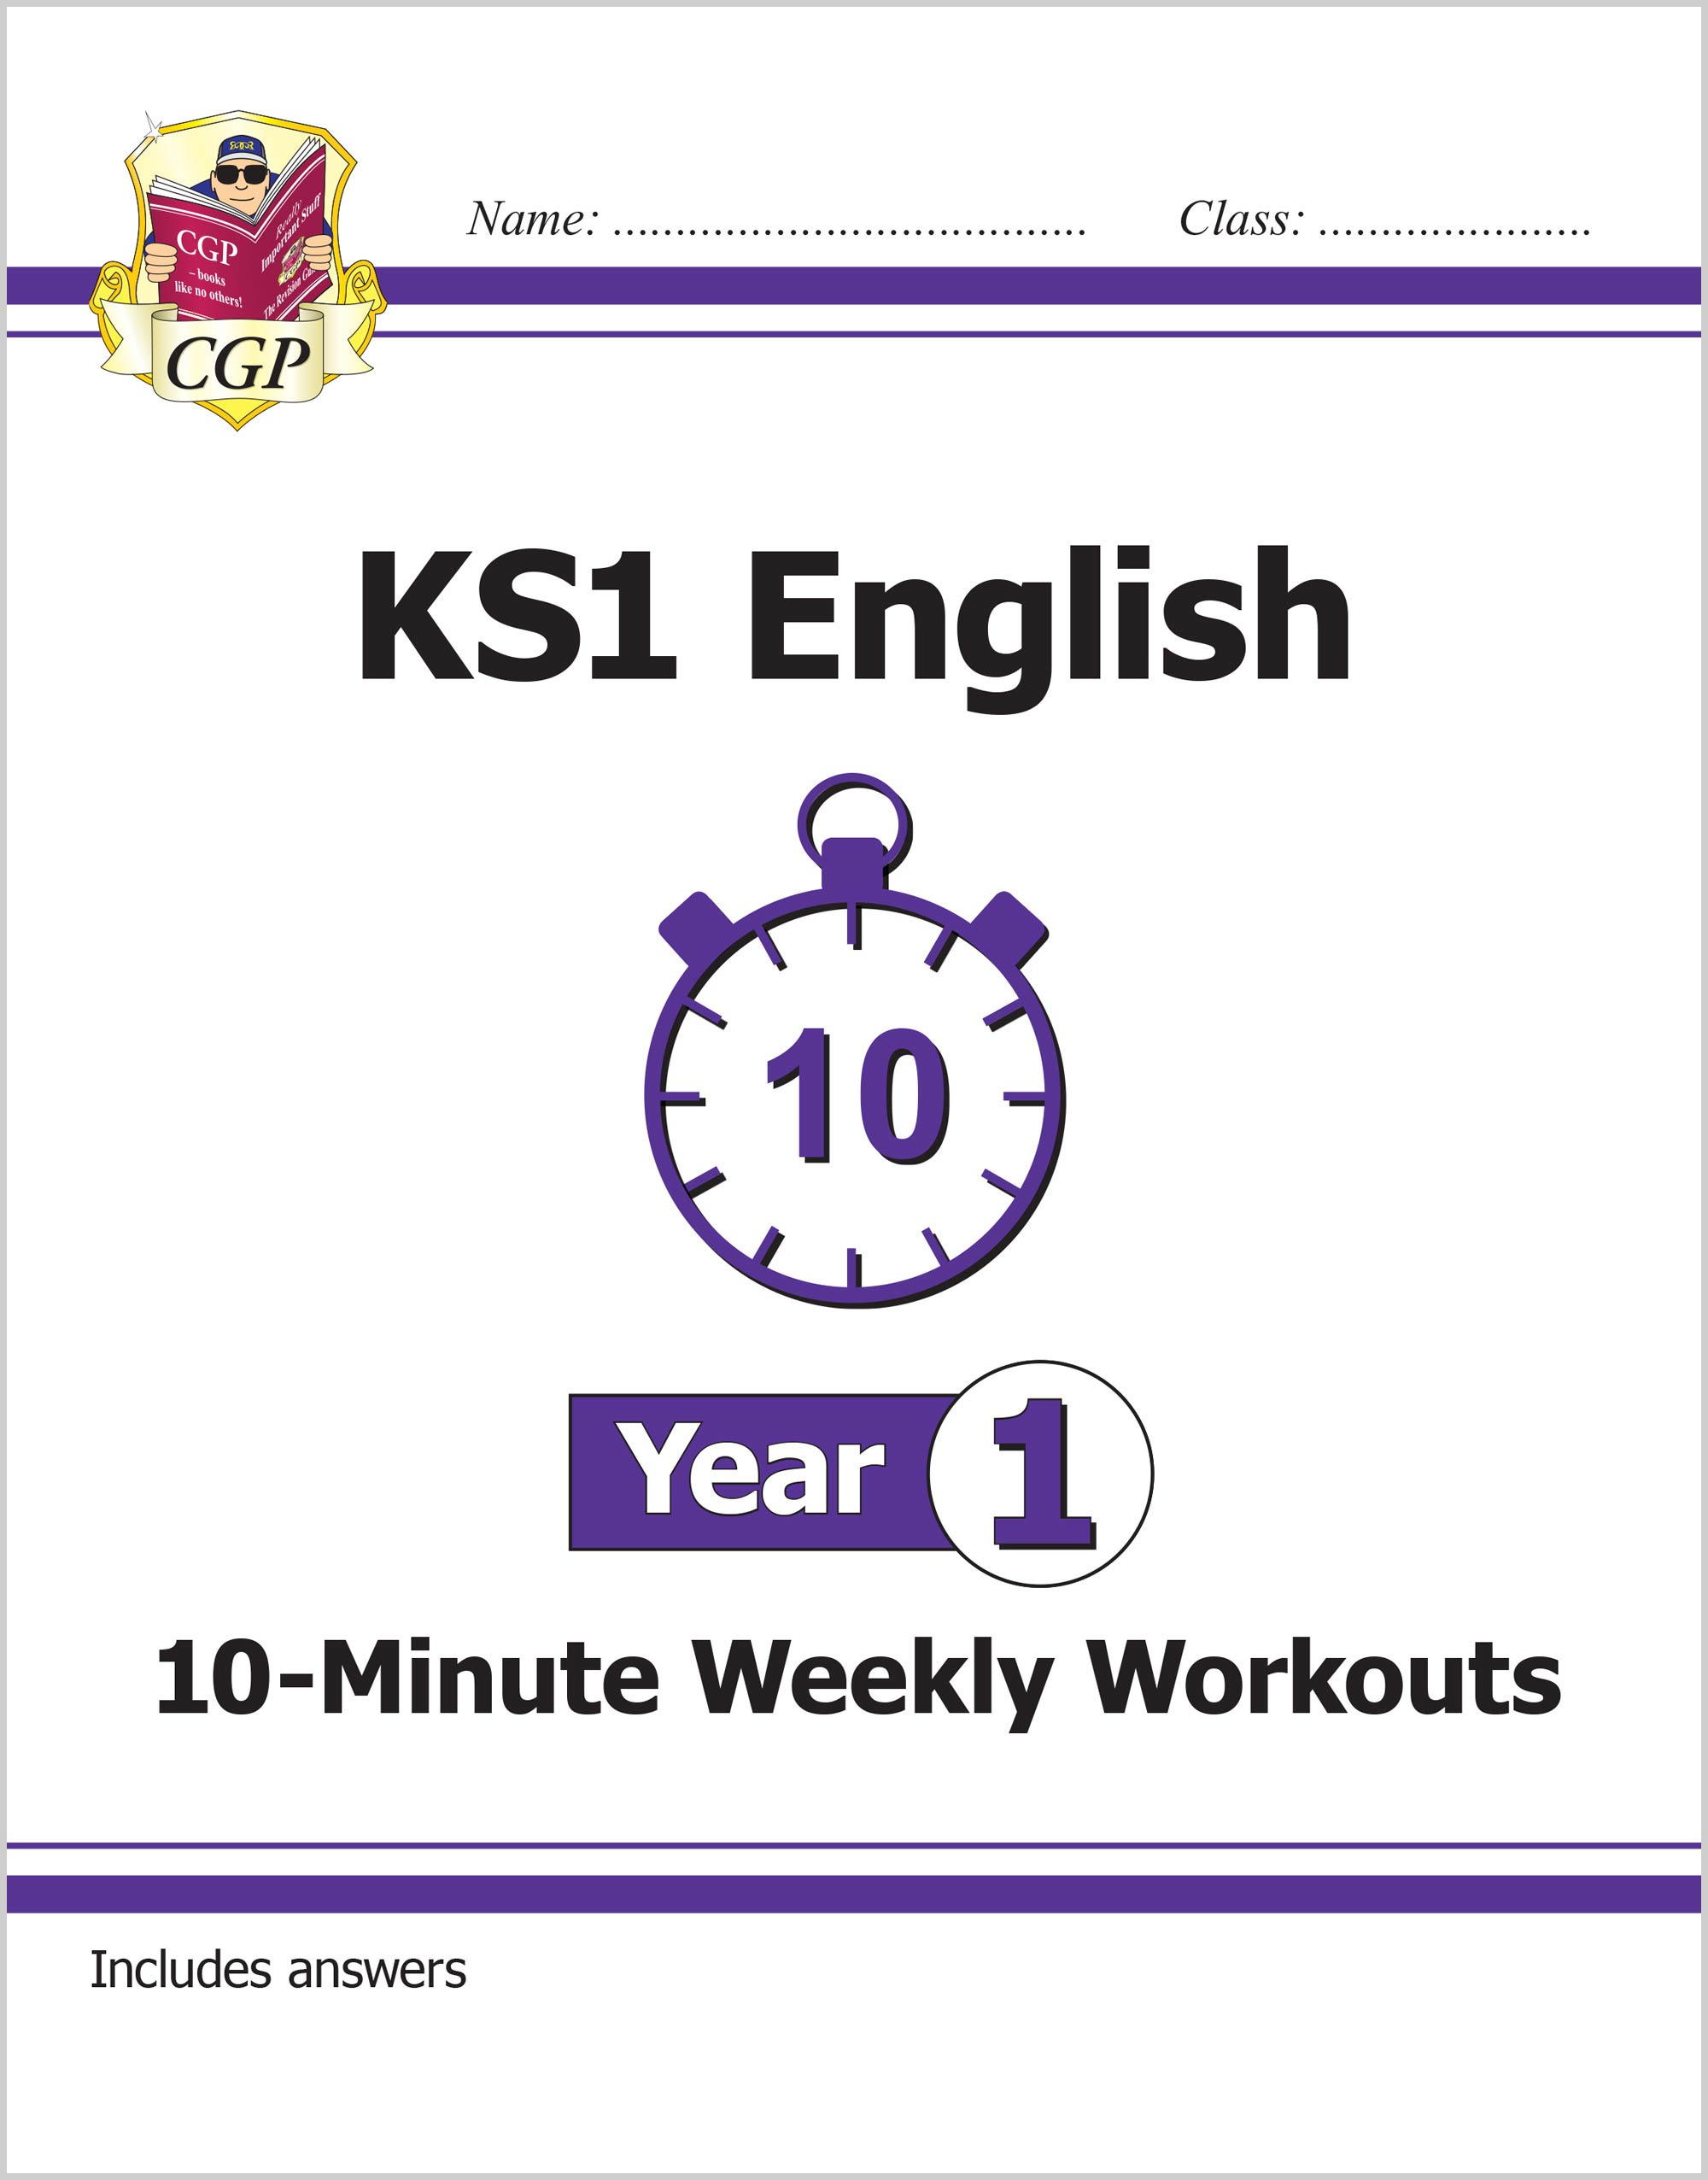 E1XW11 - KS1 English 10-Minute Weekly Workouts - Year 1